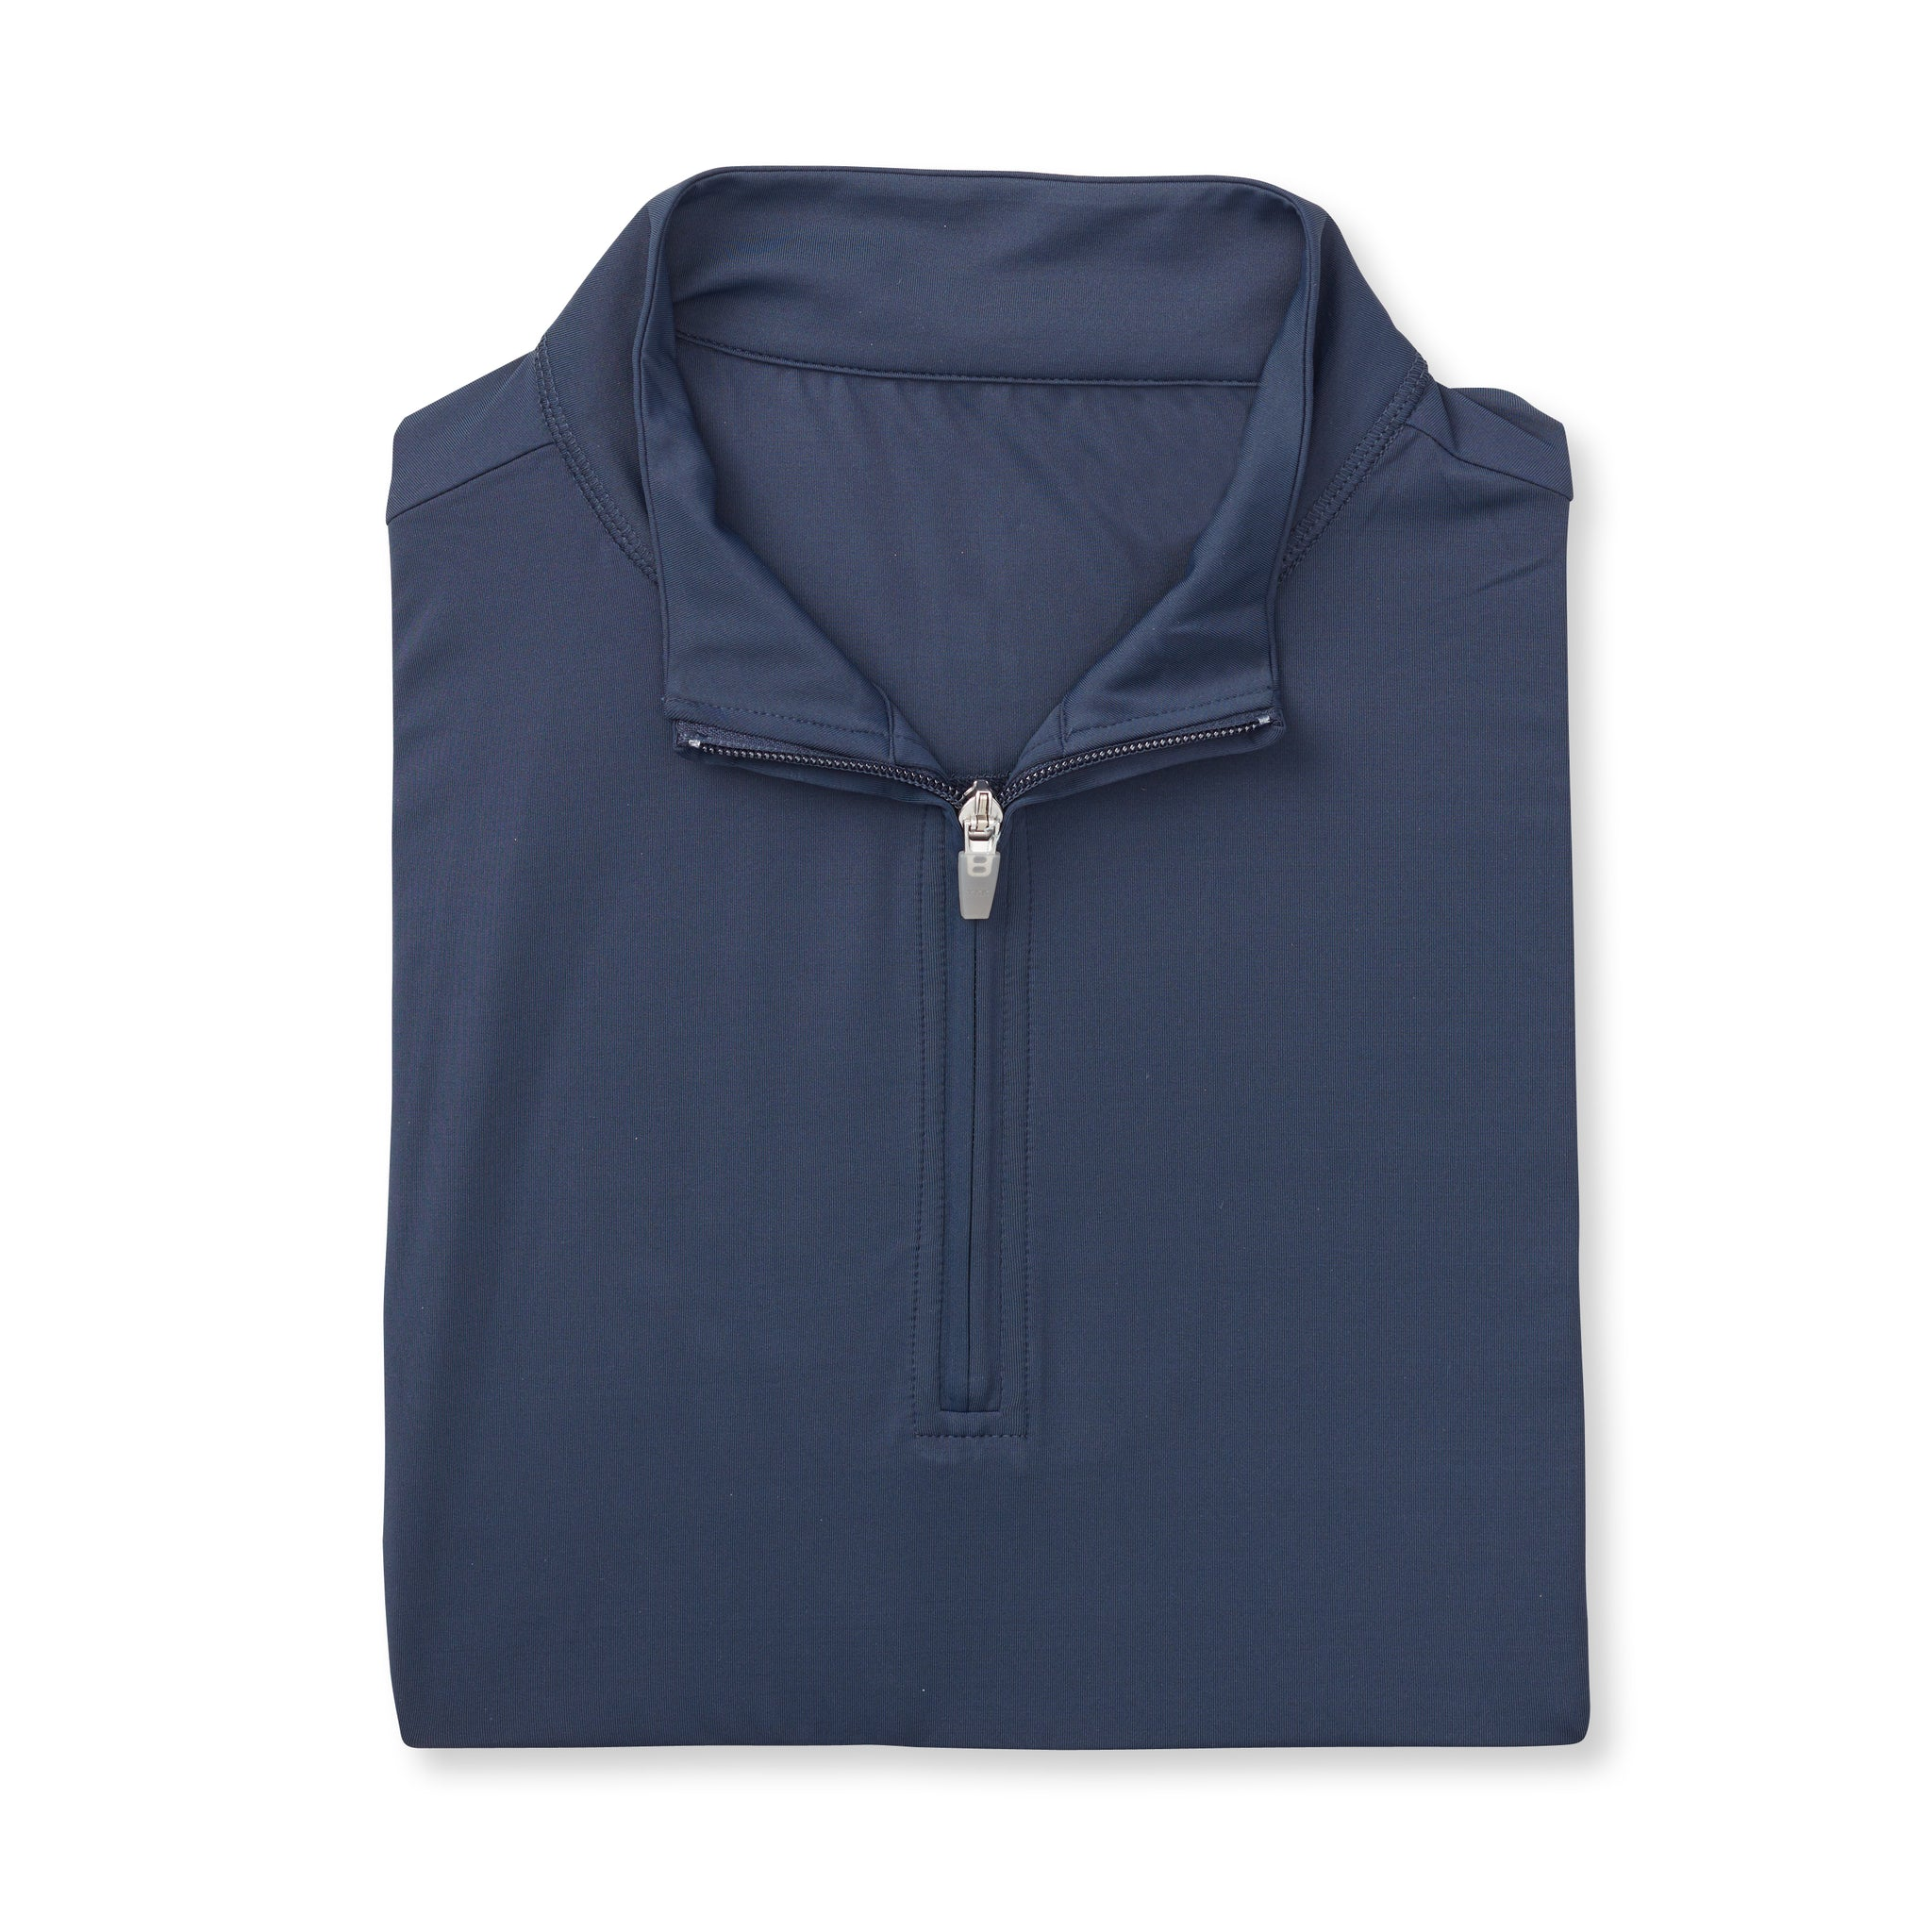 ECOTEC Half Zip Pullover - Navy IS66006